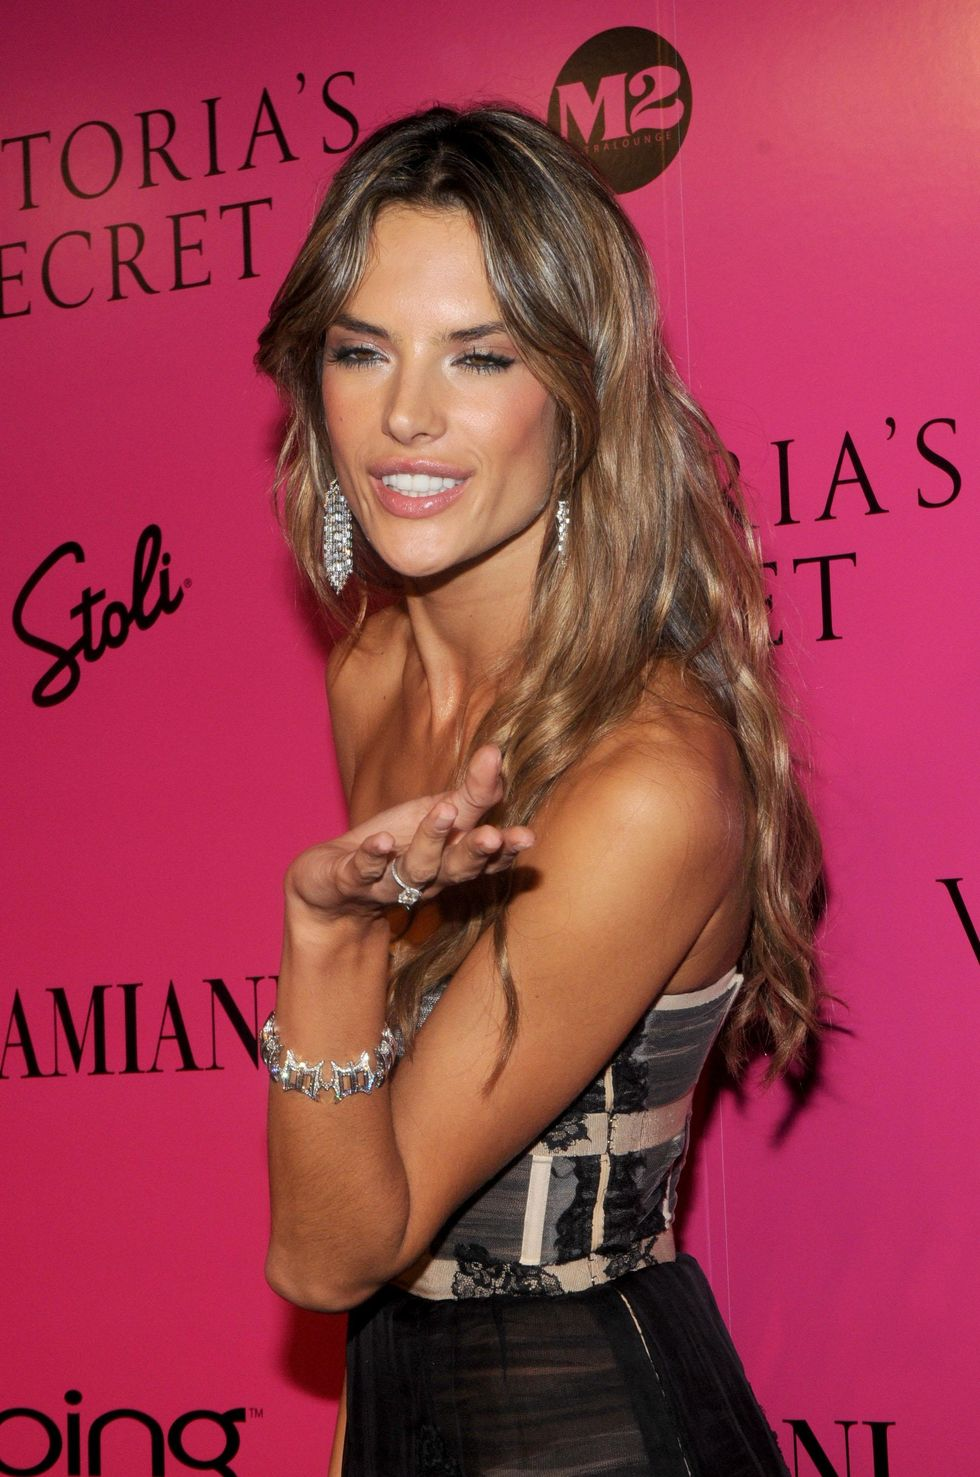 alessandra-ambrosio-2009-victorias-secret-fashion-show-01